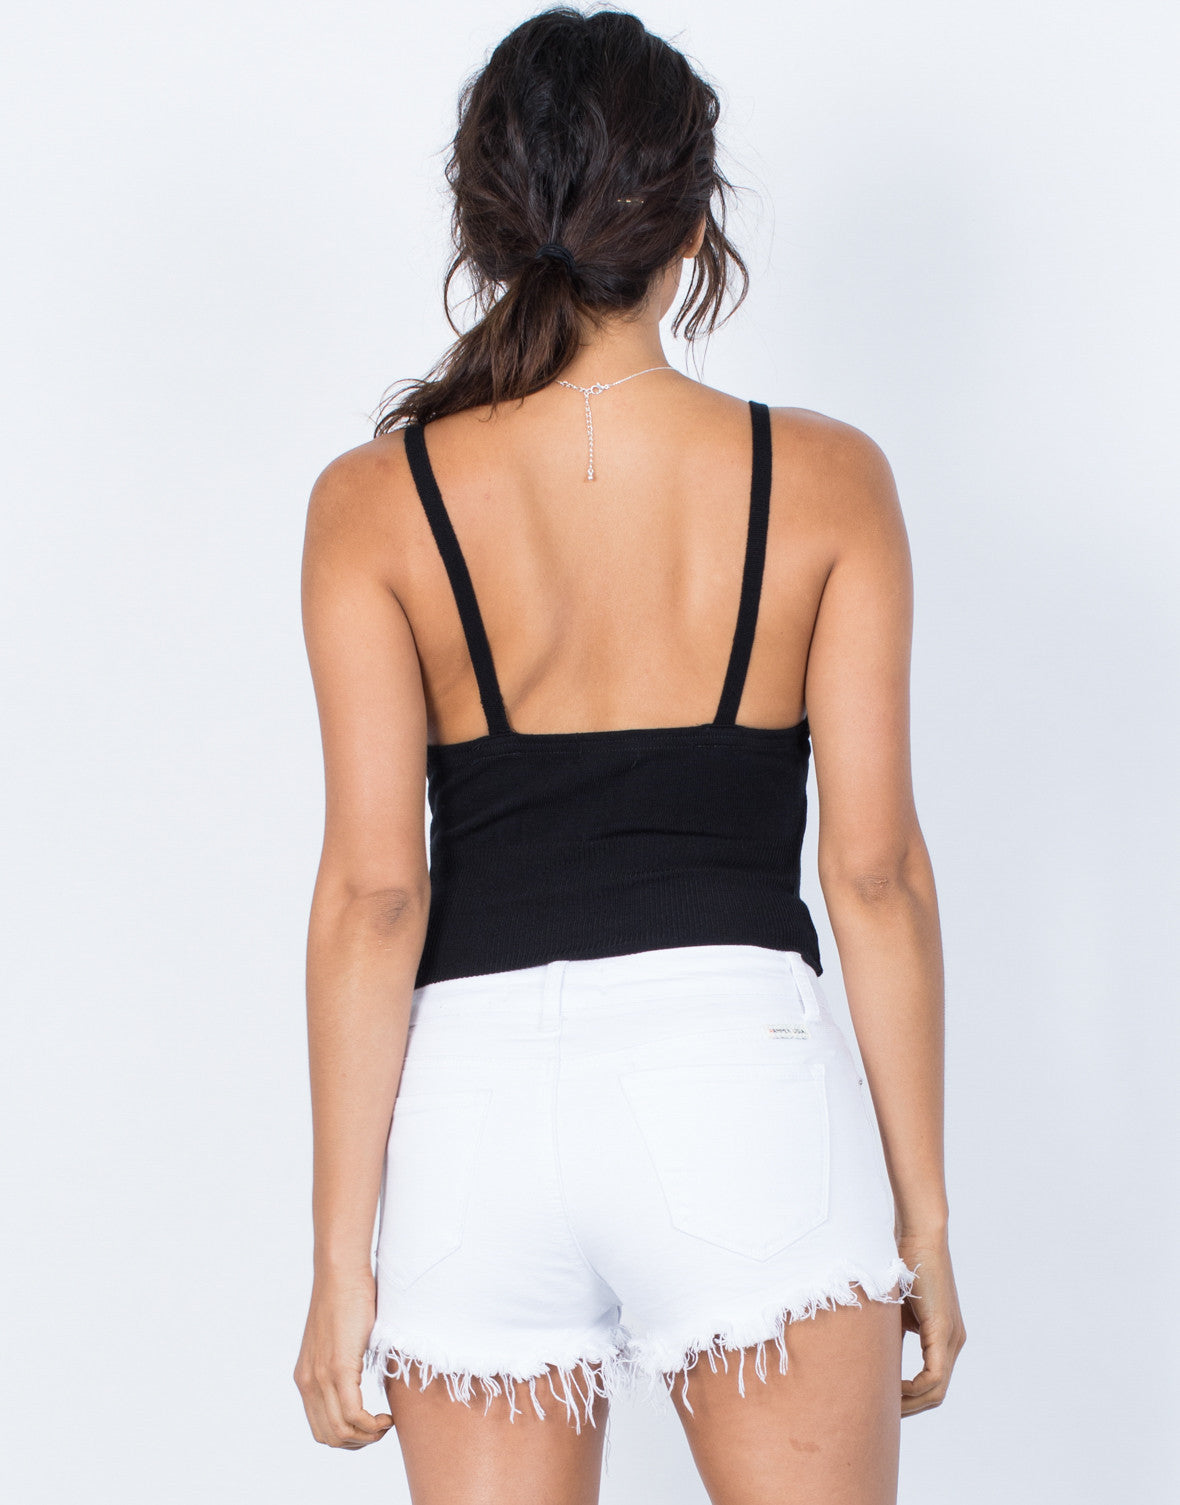 Black Perfect Fit Tank Top - Back View